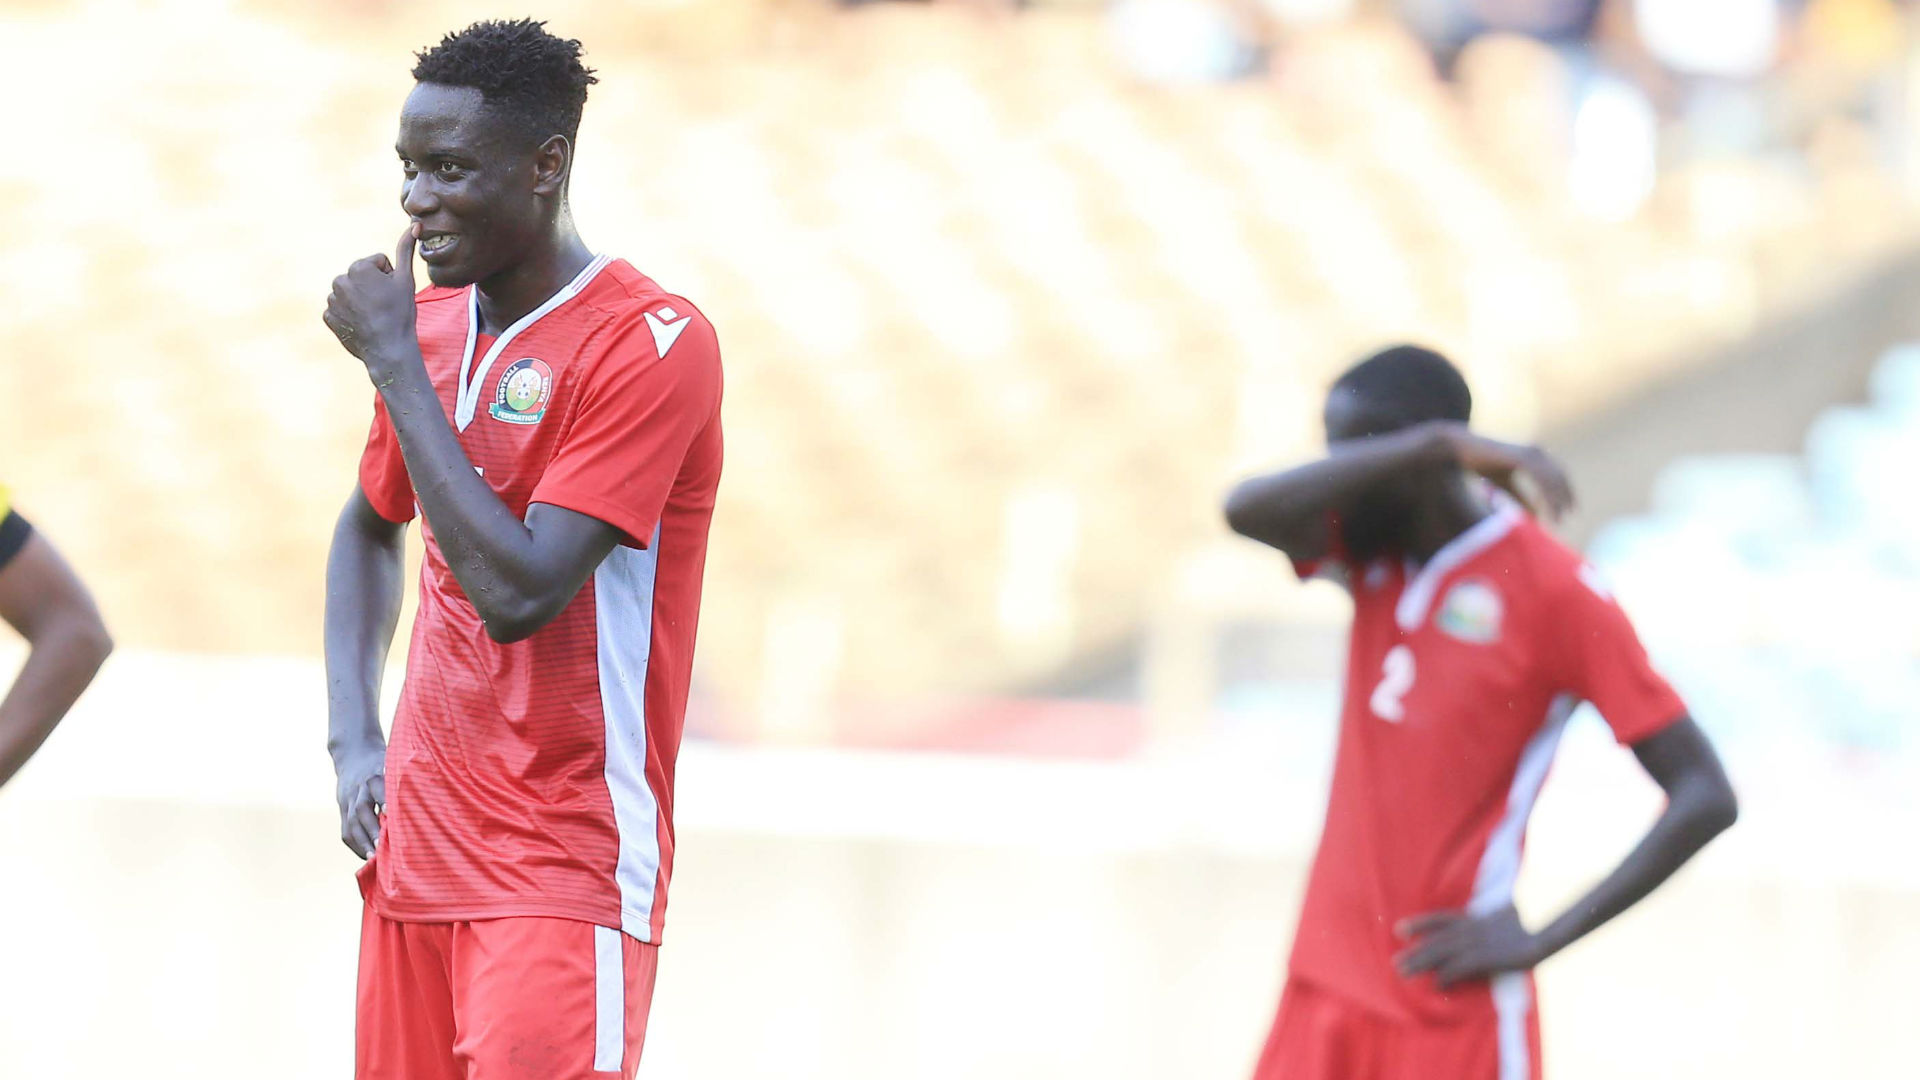 Afcon 2021 Qualifiers: Why Kenya's draw against Egypt feels like a win